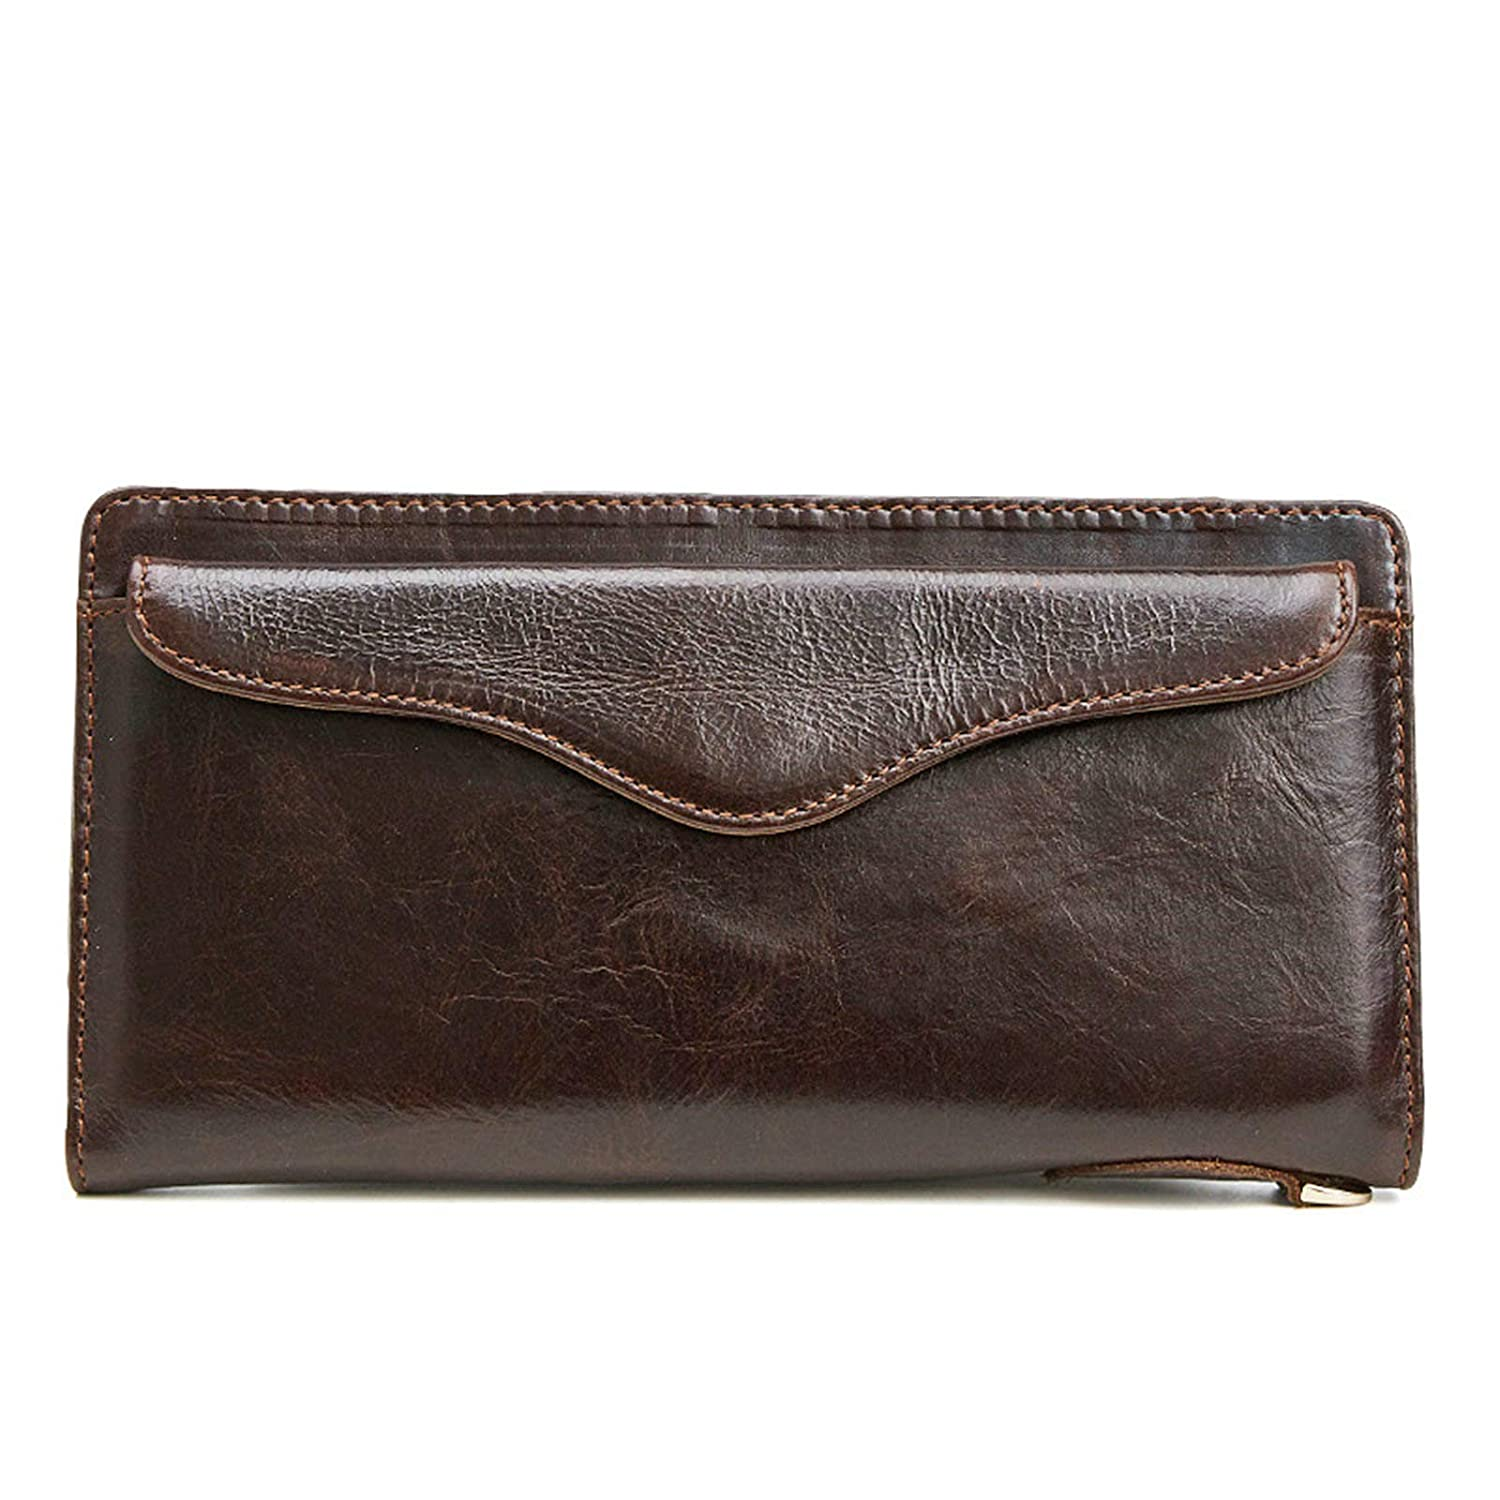 KnSam Genuine Leather Wallet for Mens Bifold Long with Buckle Coffee